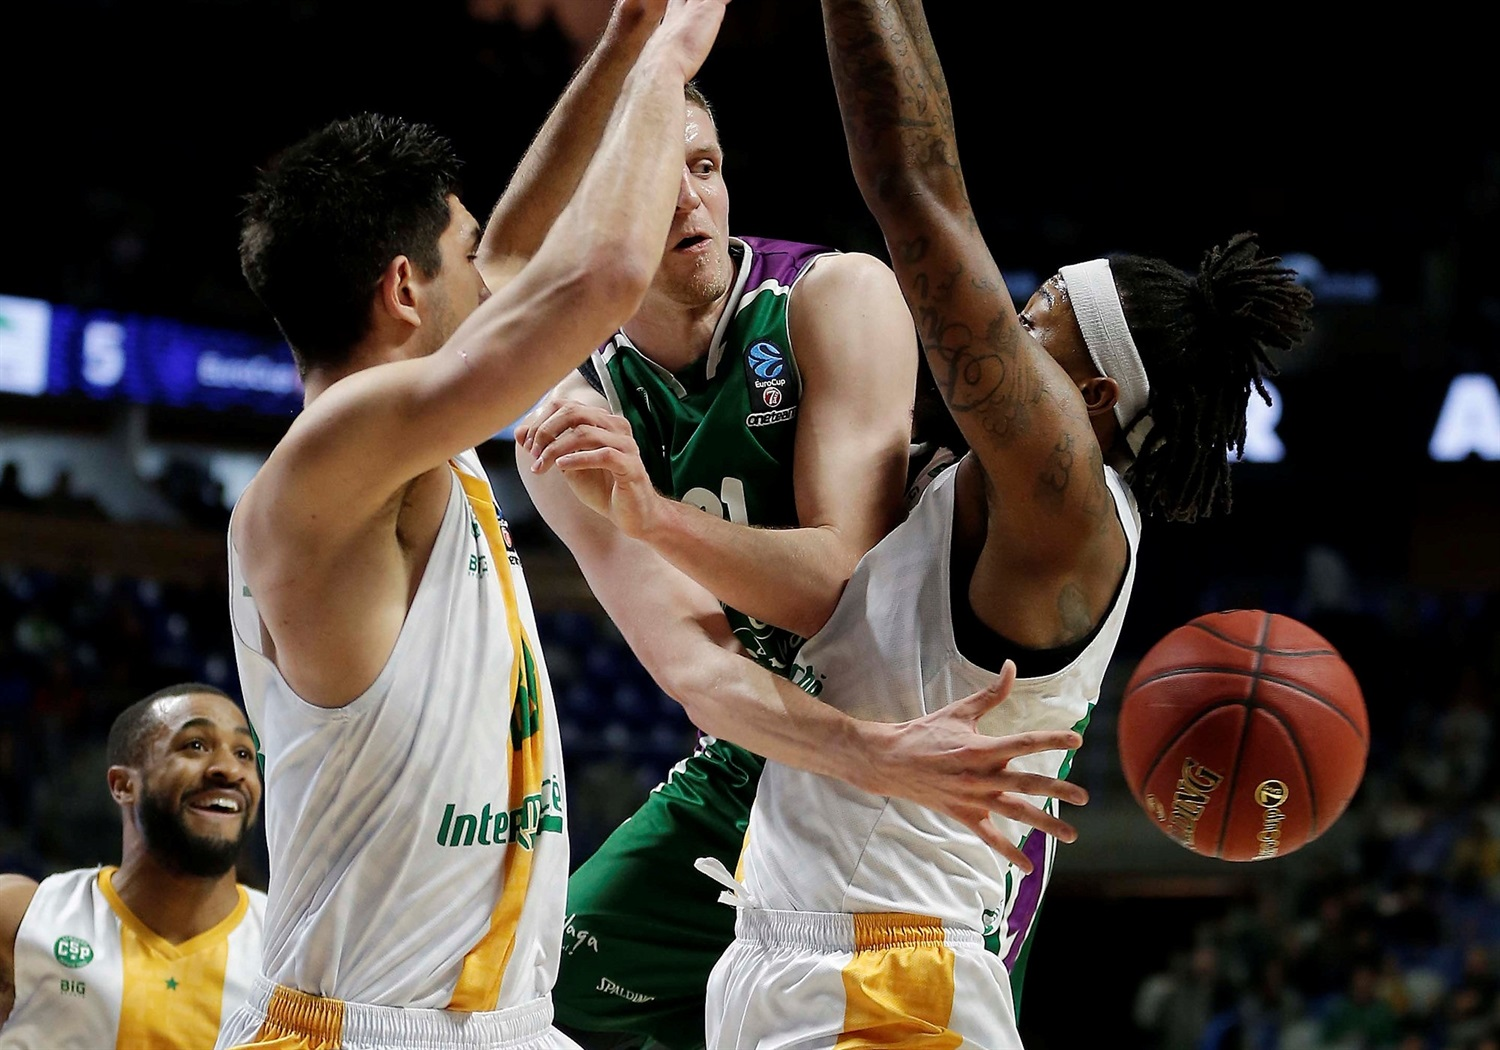 Adam Waczynski - Unicaja Malaga (photo Unicaja) - EC18